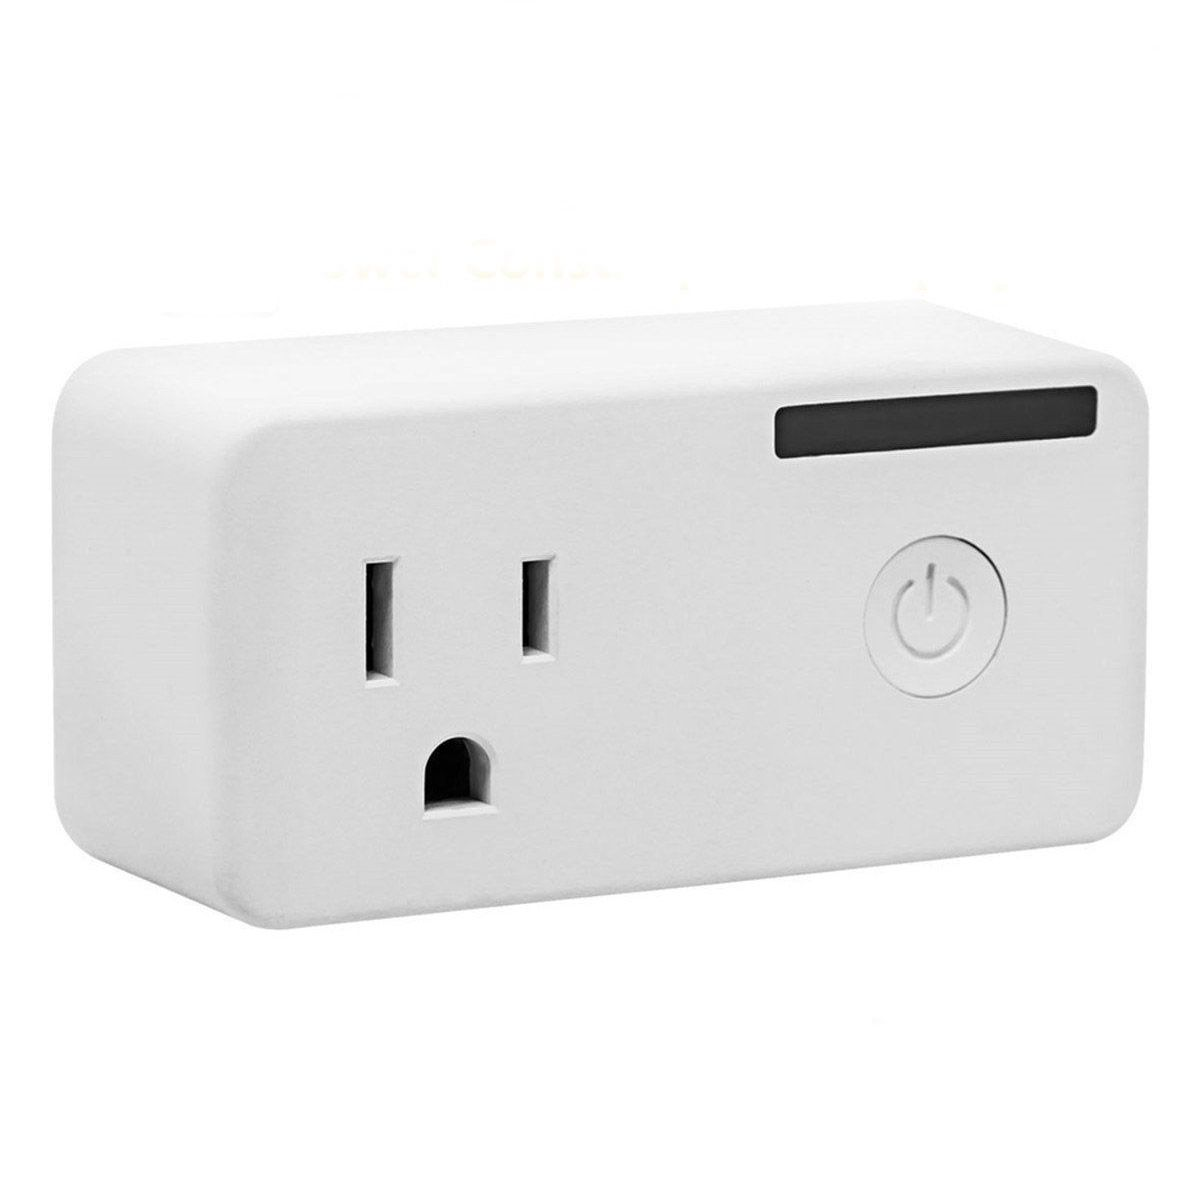 Mini Wifi Timing Function US Plug Works with Google Home Alexa Smart Switch, Remote Control Devices Anywhere with Electricity